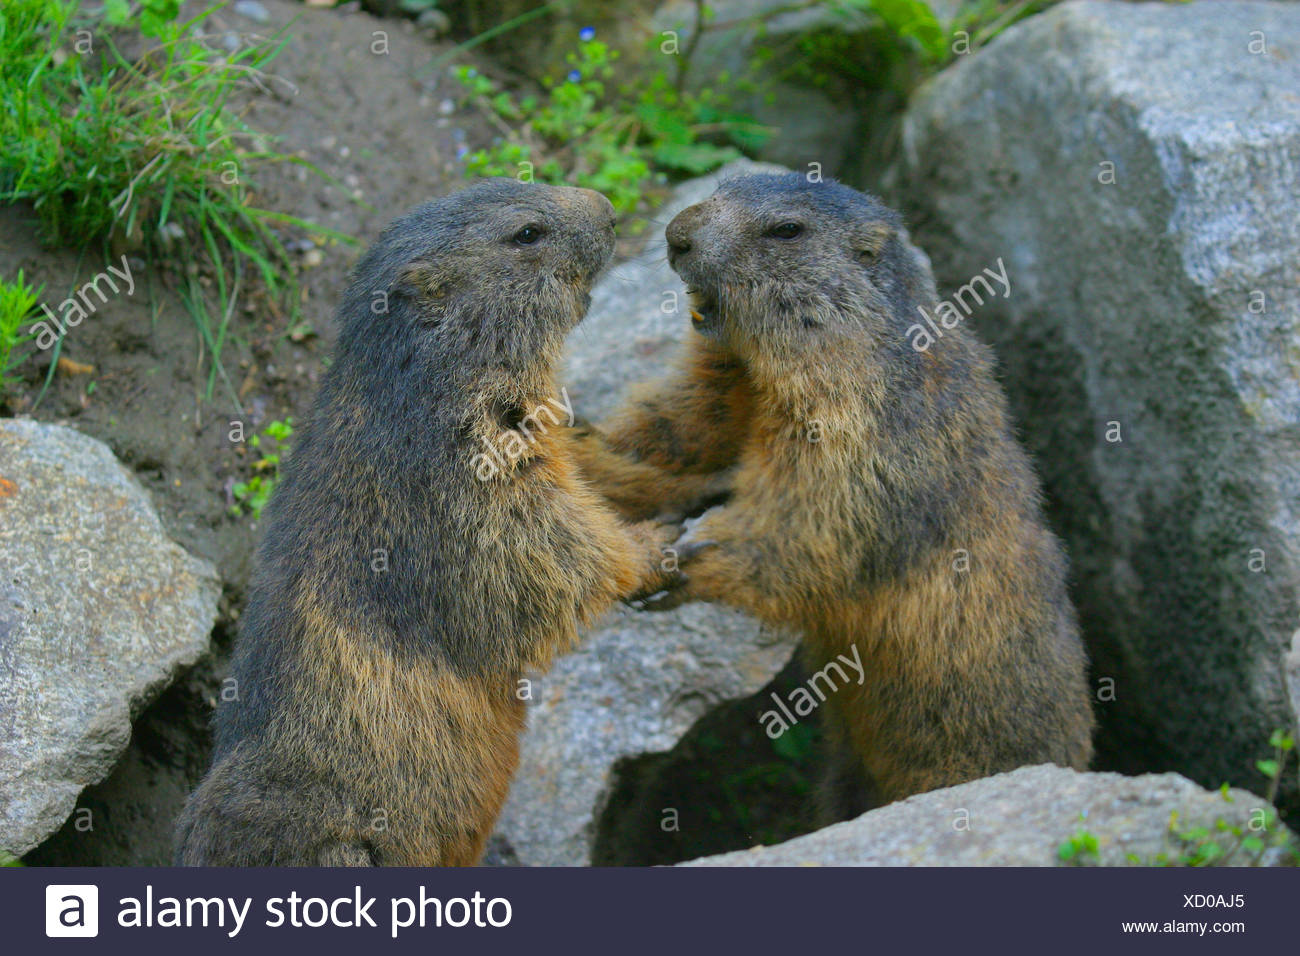 alpine marmot (Marmota marmota), two fighting marmots, Austria - Stock Image